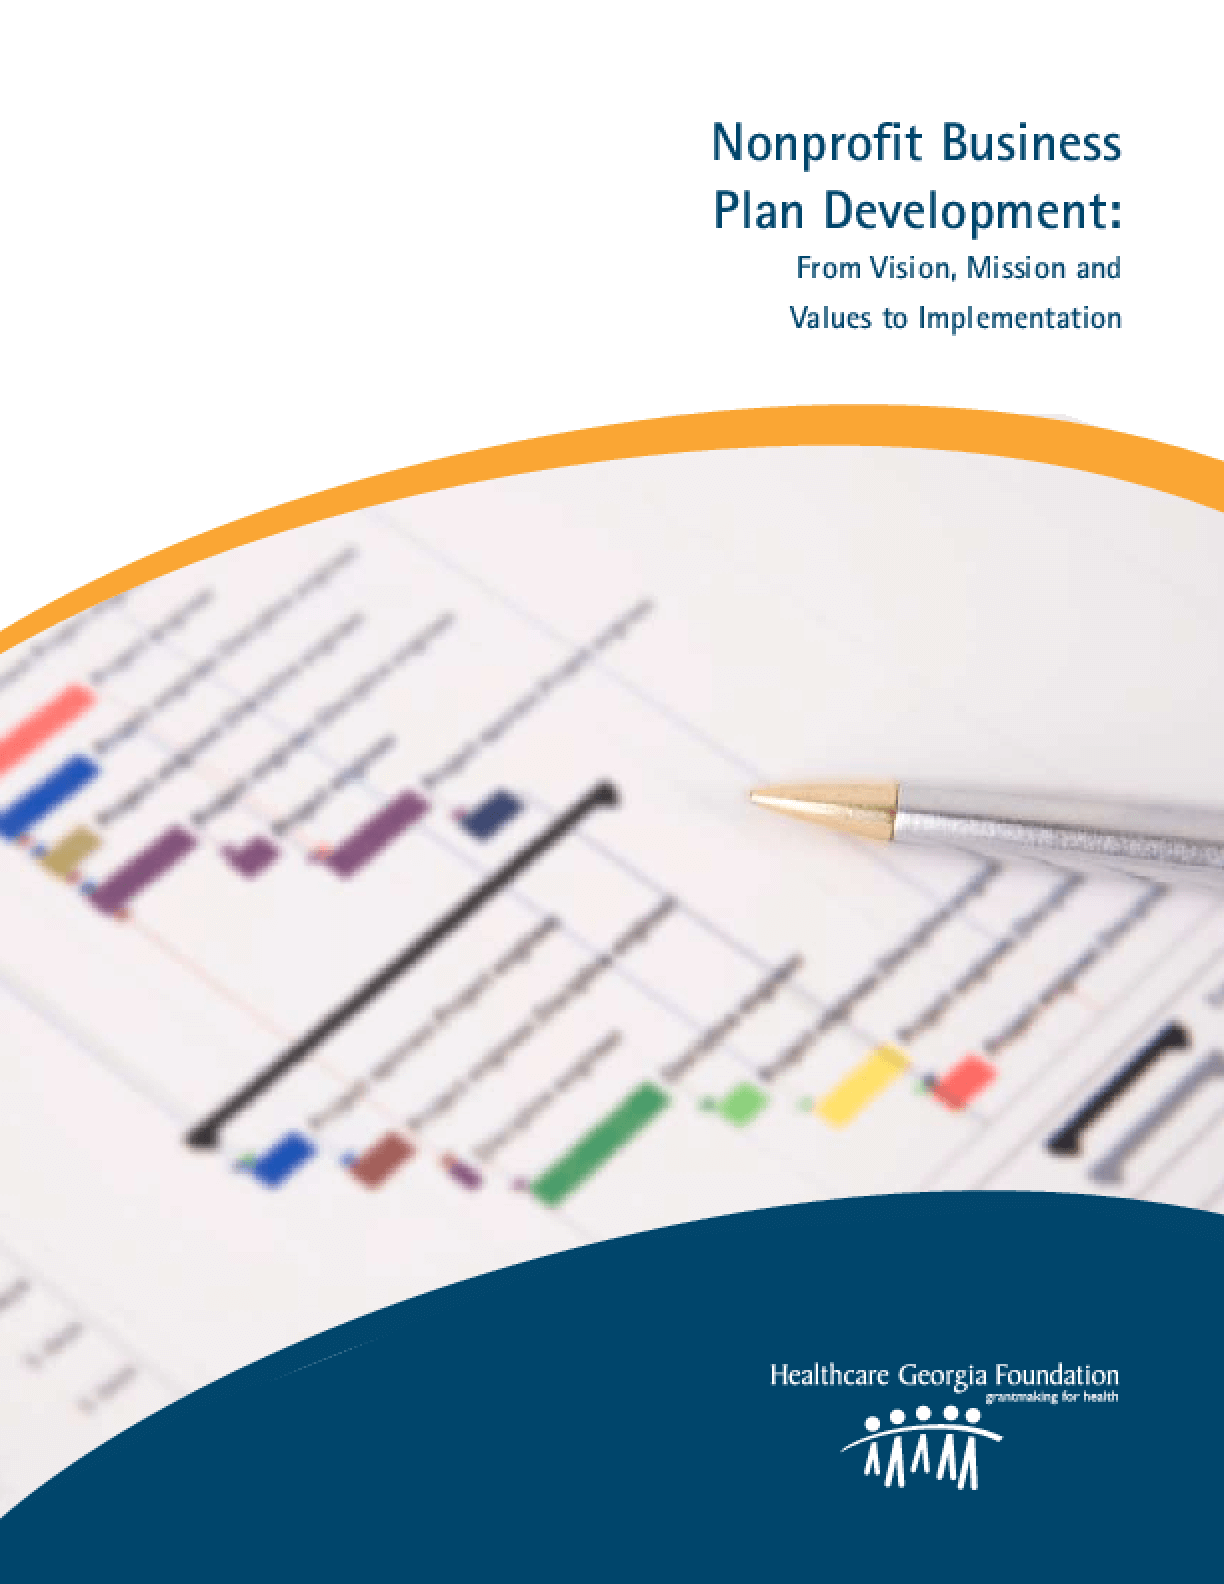 Nonprofit Business Plan Development: From Vision, Mission and Values to Implementation